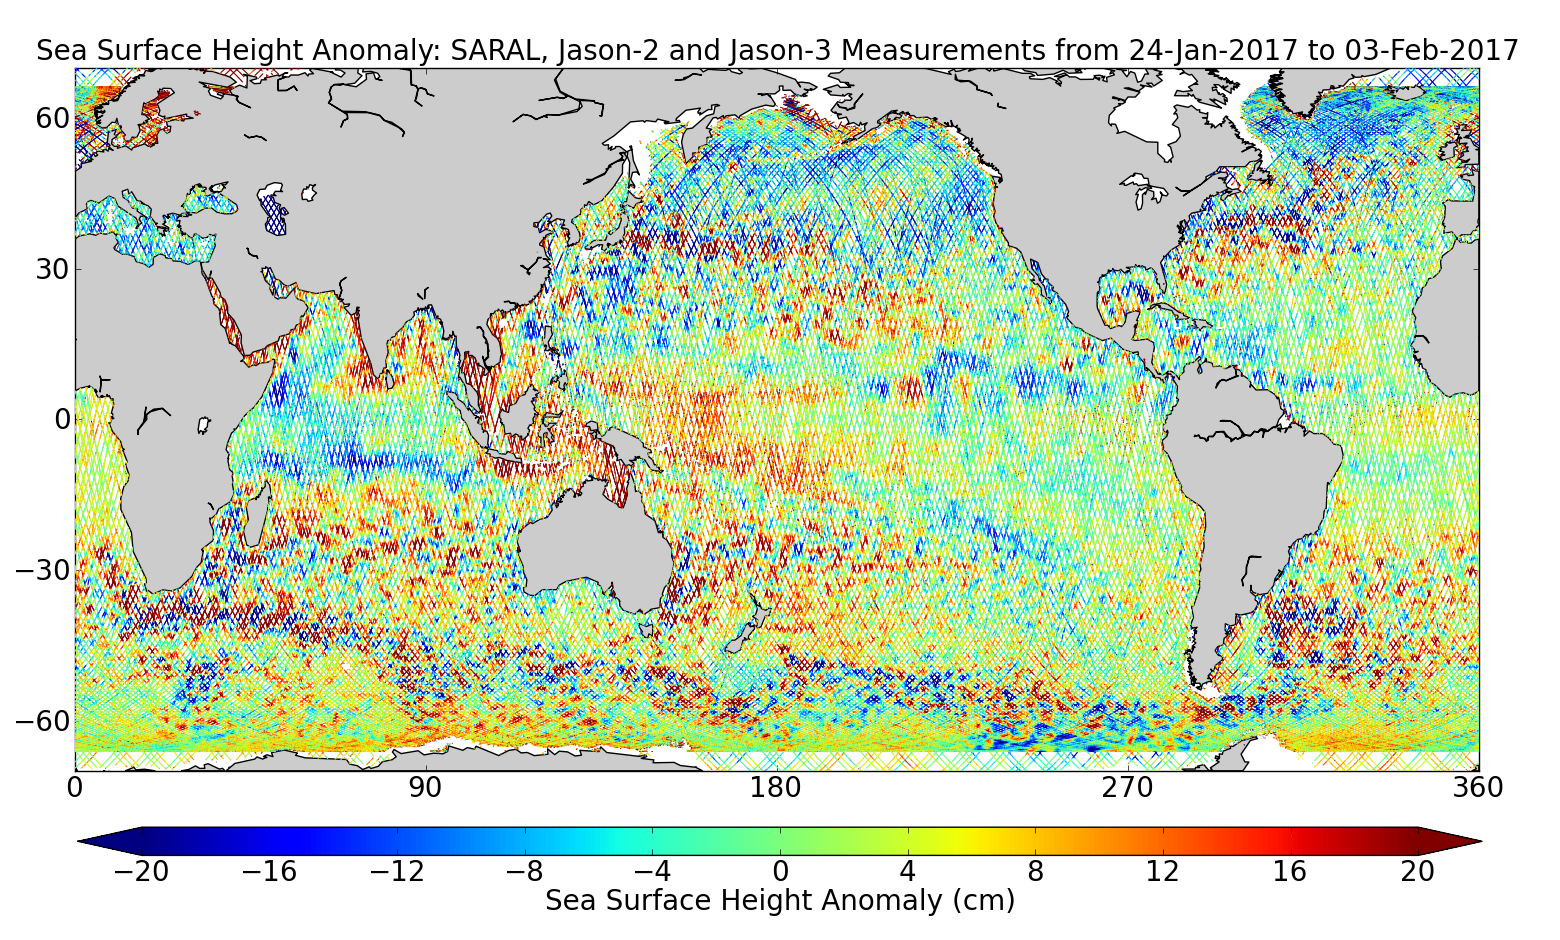 Sea Surface Height Anomaly: SARAL, Jason-2 and Jason-3 Measurements from 24-Jan-2017 to 03-Feb-2017